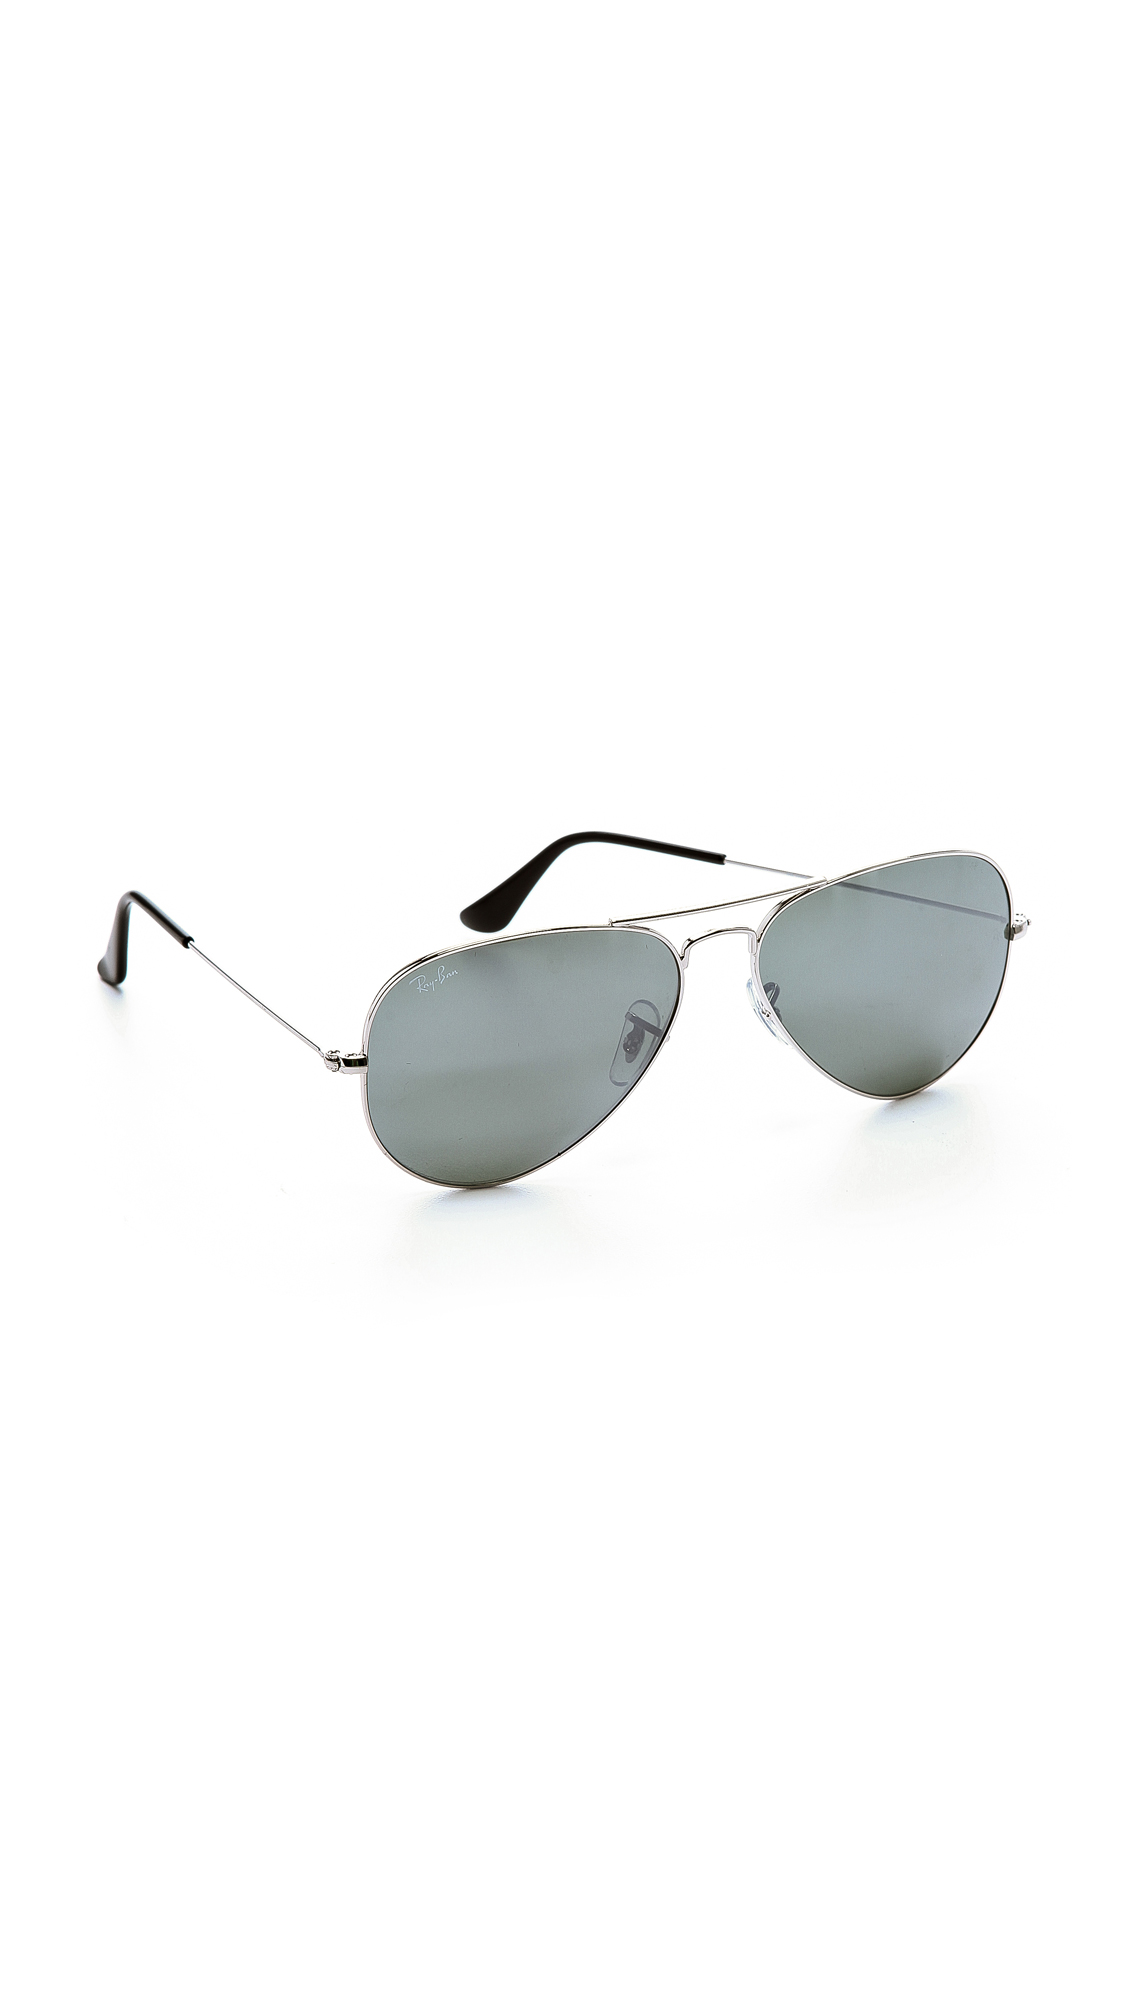 $ BUY NOW. In the world of aviator sunglasses, none are more iconic than Ray-Ban. This pair gives the classic frames a facelift with rainbow-mirrored lenses.